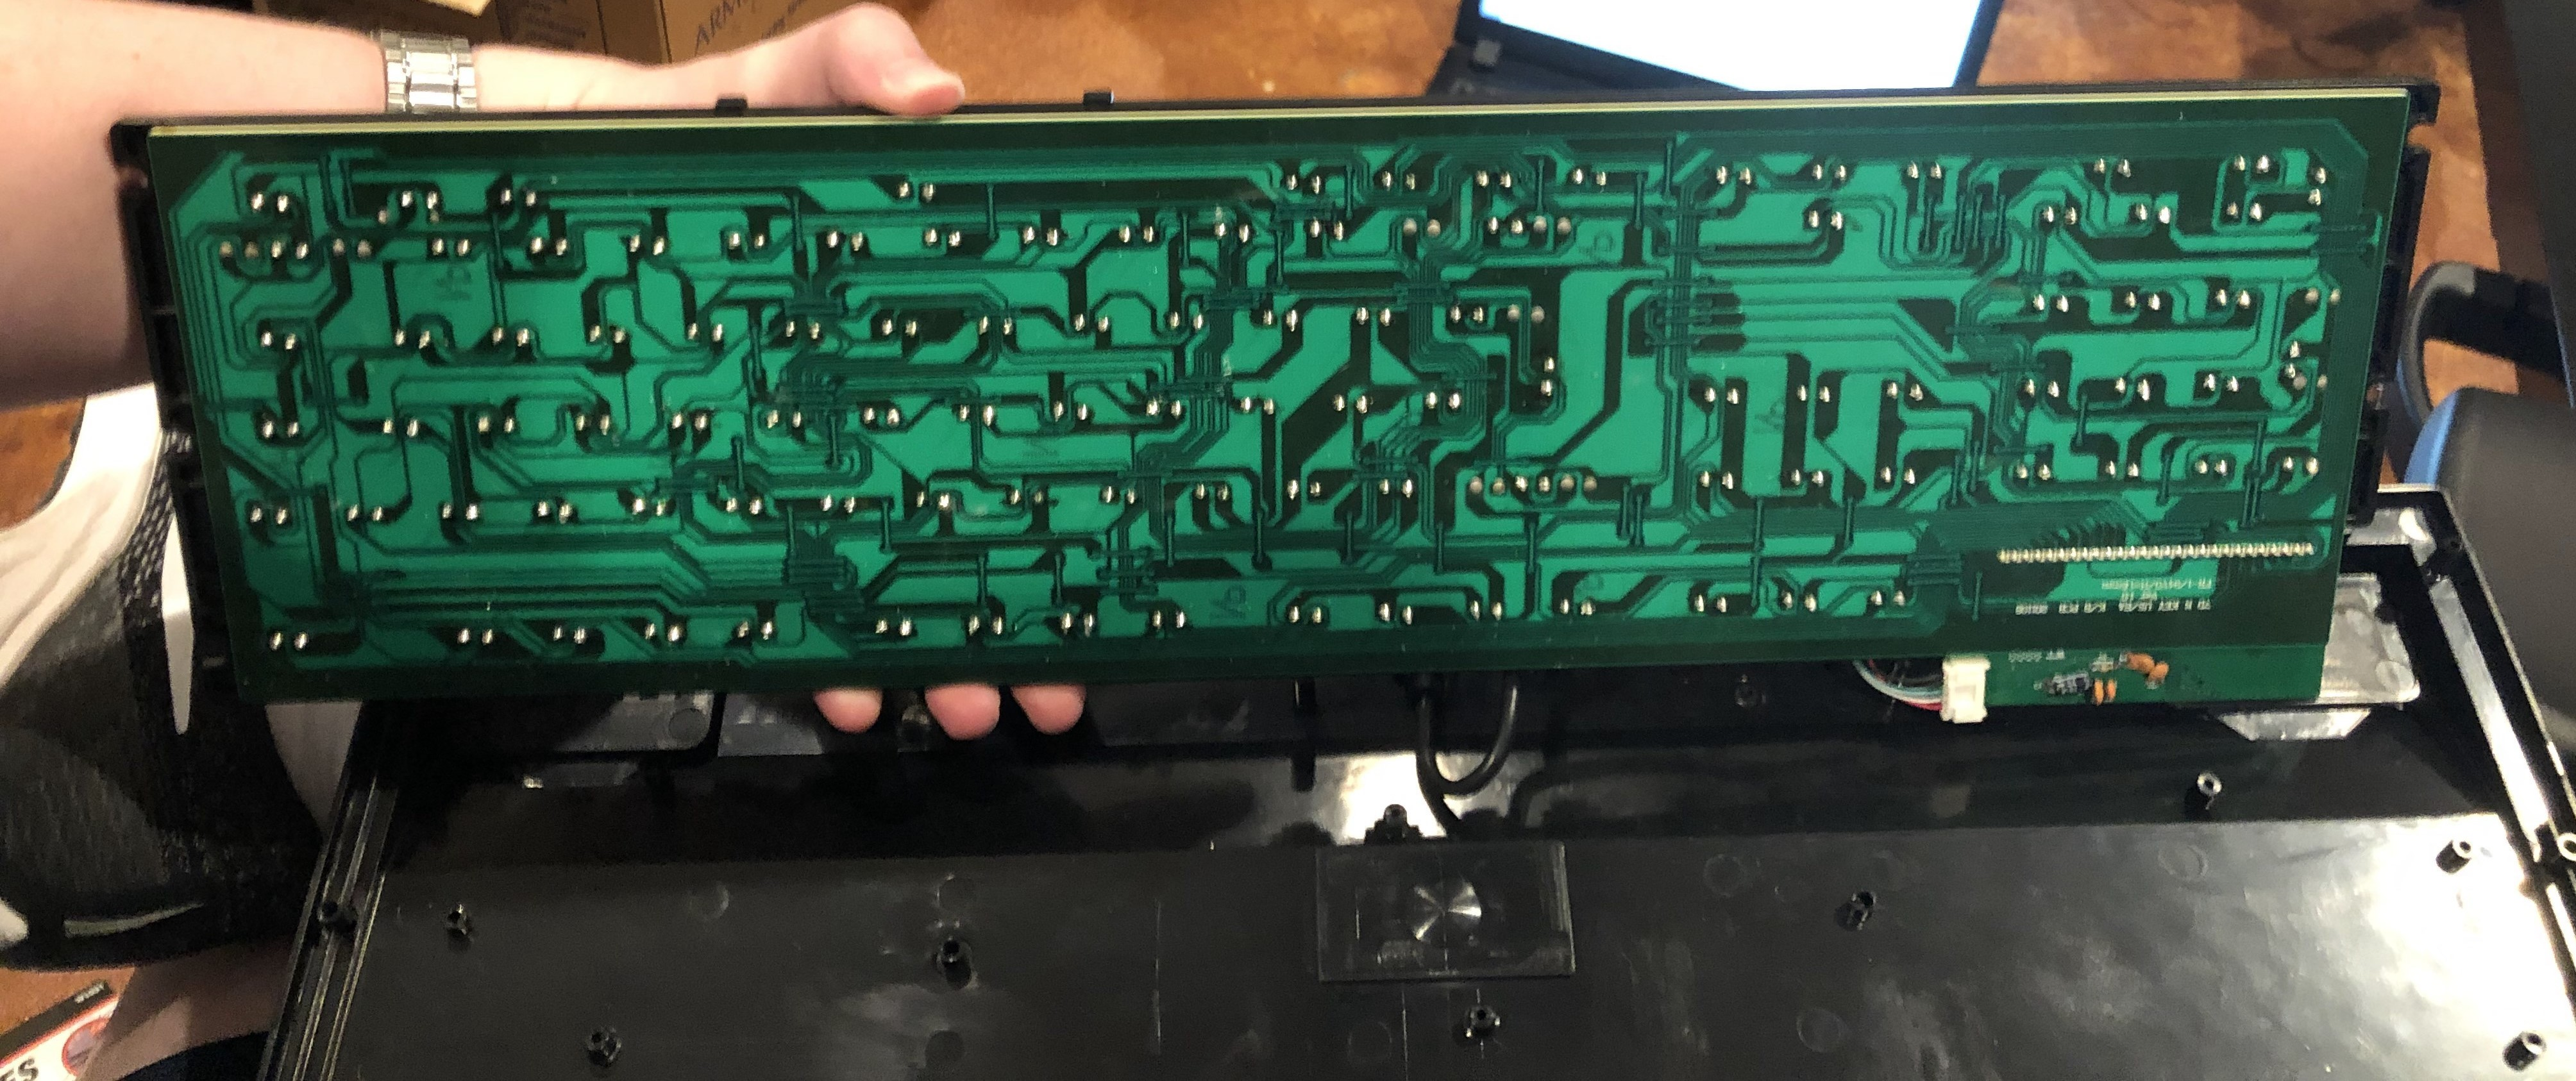 Underside of the board, please excuse some of the crappy solder joints